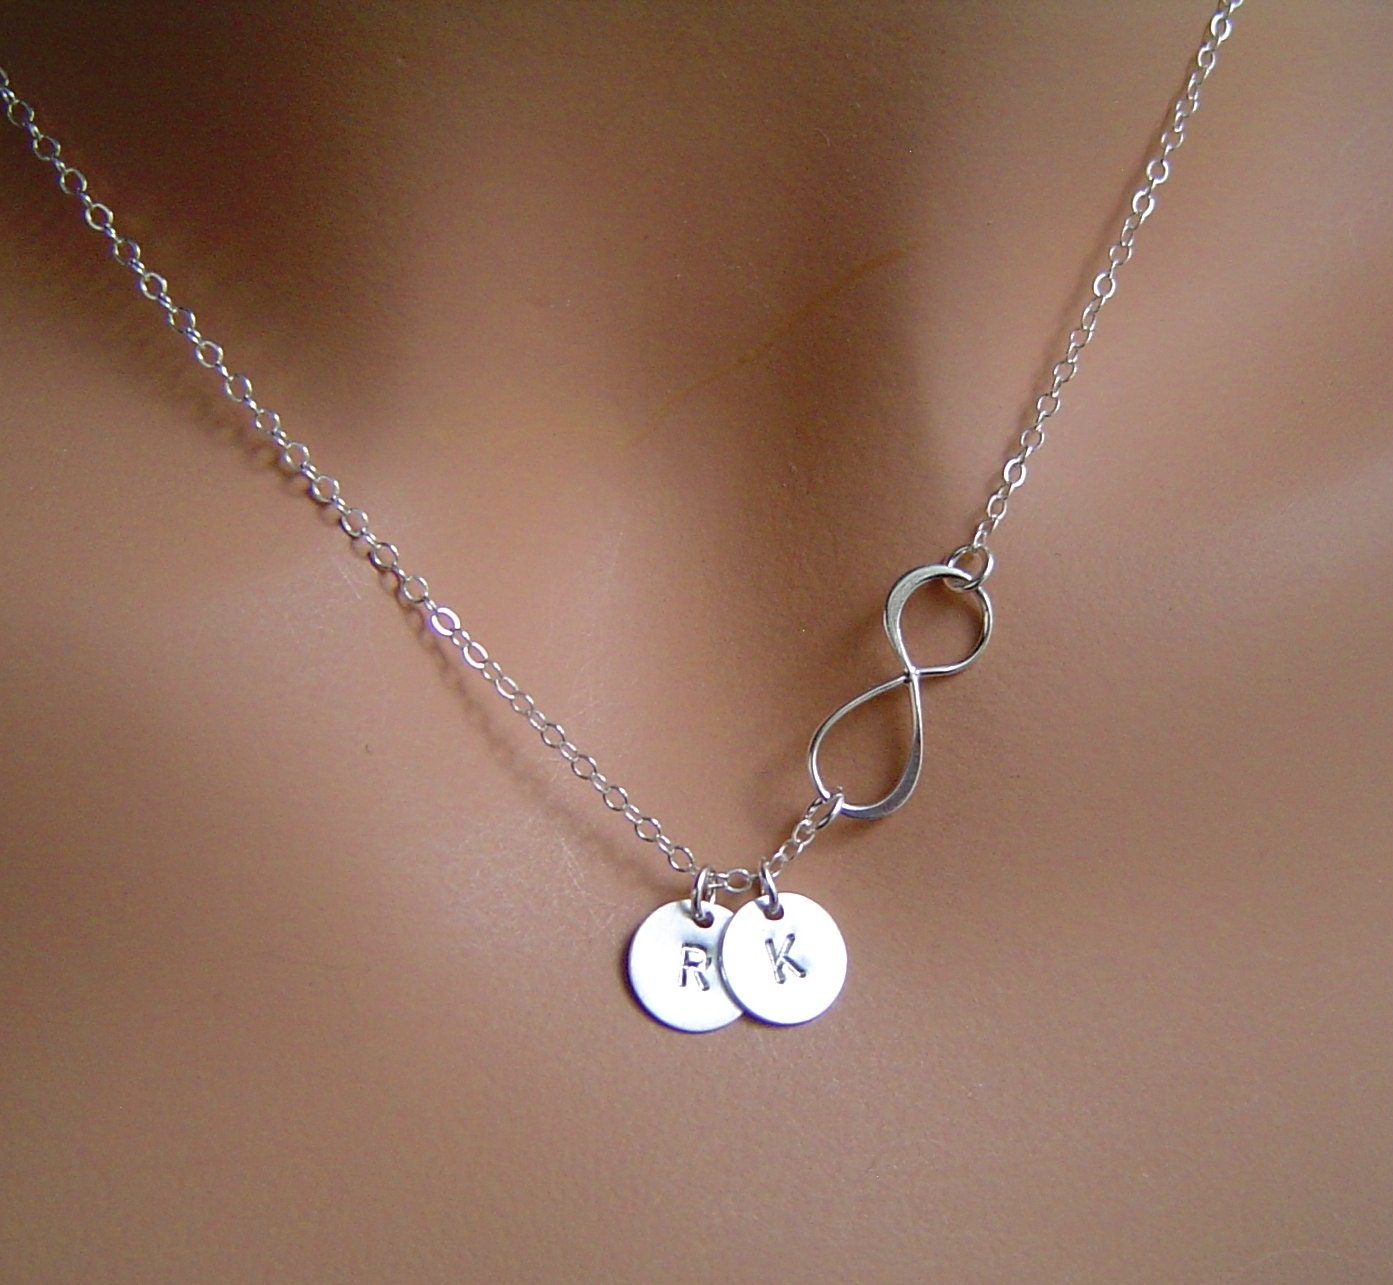 necklace personalized infinity necklace infinity charm pendant